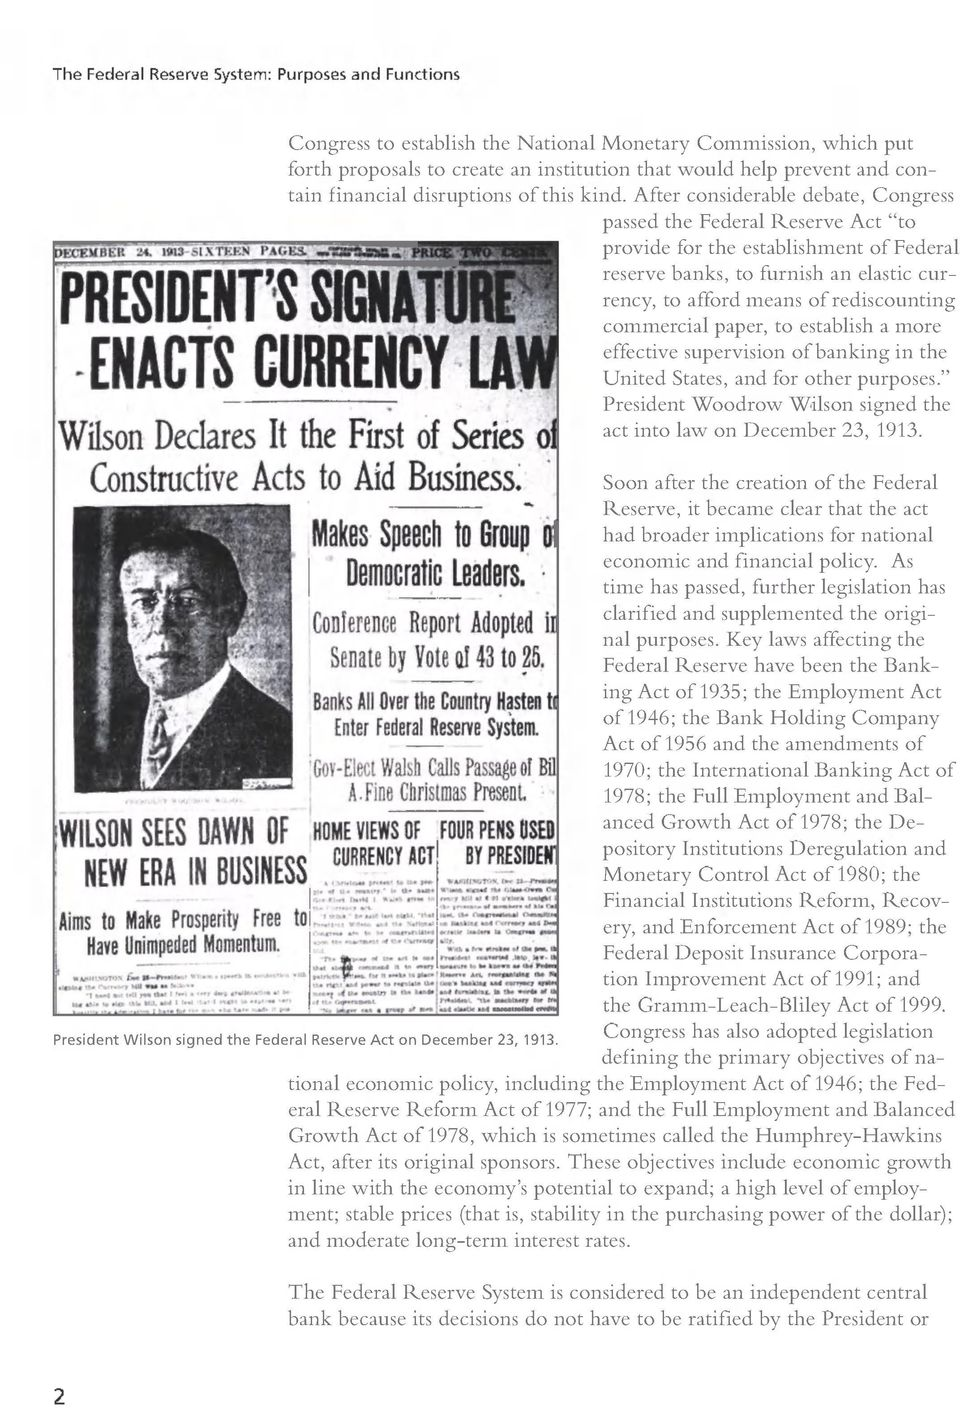 "commercial paper, to establish a more effective supervision of banking in the United States, and for other purposes."" President Woodrow Wilson signed the act into law on December 23, 1913."